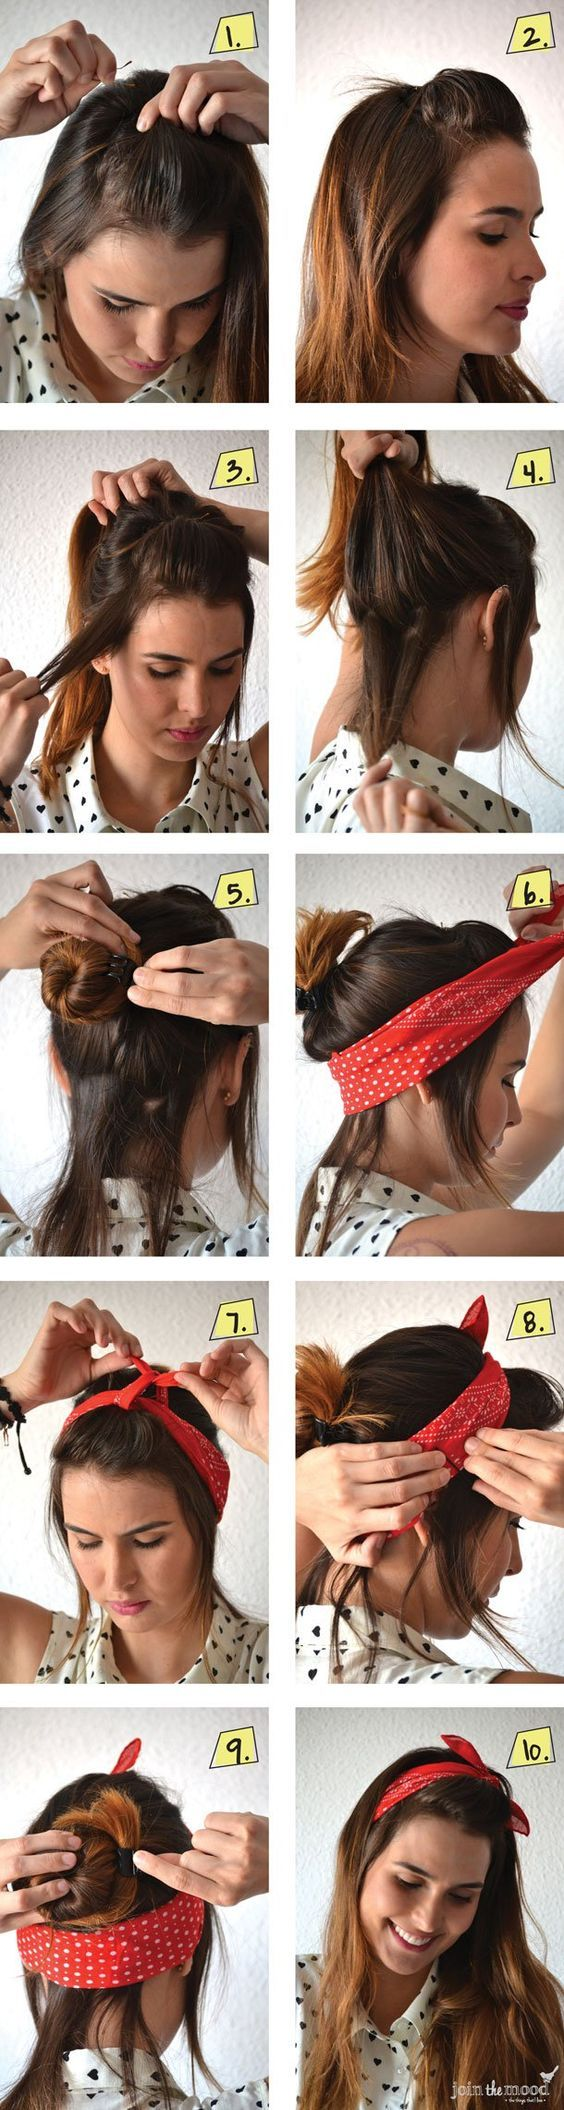 25 ideas of hairstyles for long hair with headbands